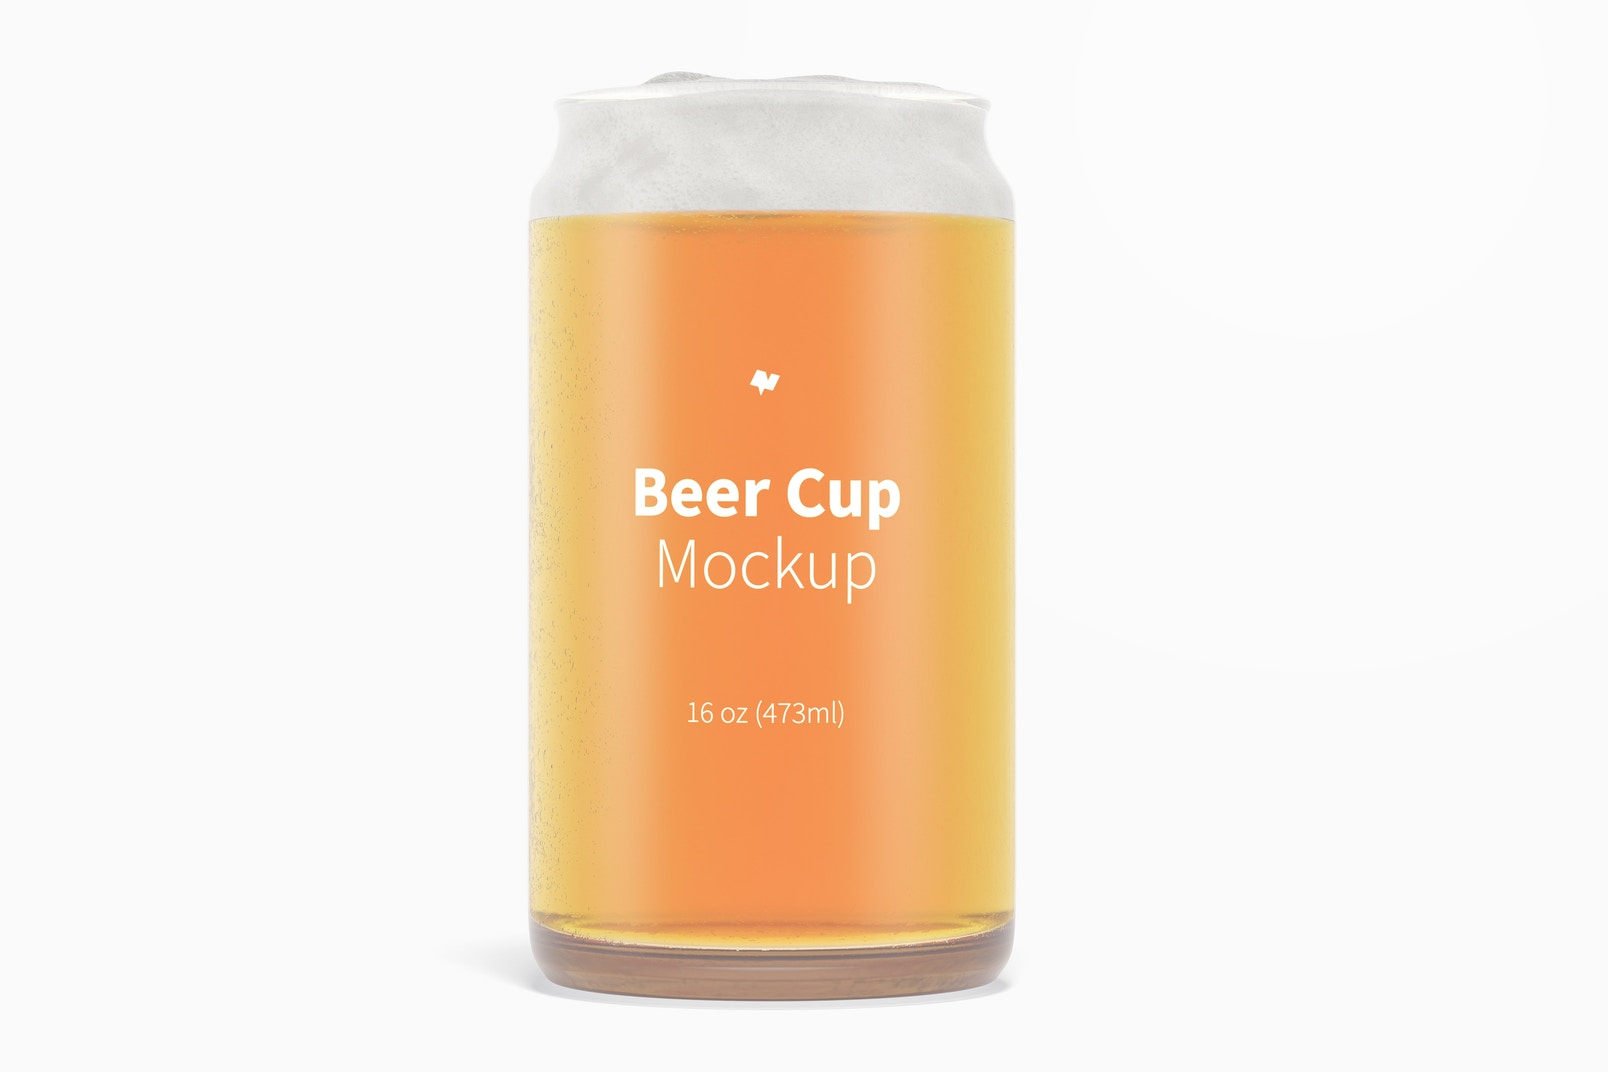 16 oz Glass Beer Cup Mockup, Front View